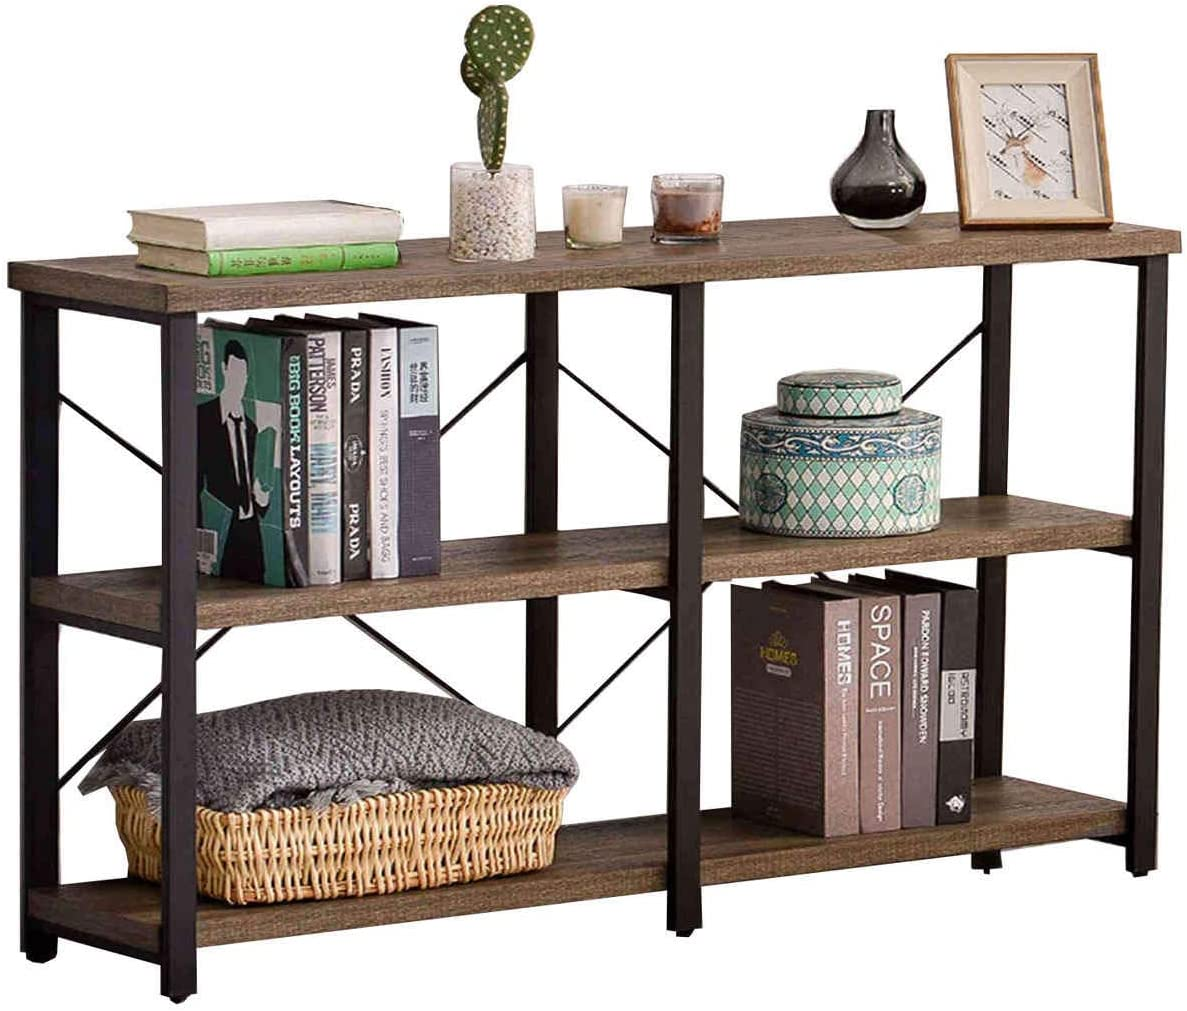 GRELO HOME Foyer Tables for Entryway, Rustic Long Console Table for Living Room, 3-Tier Industrial Sofa Table, 71 Inch Gray Oak